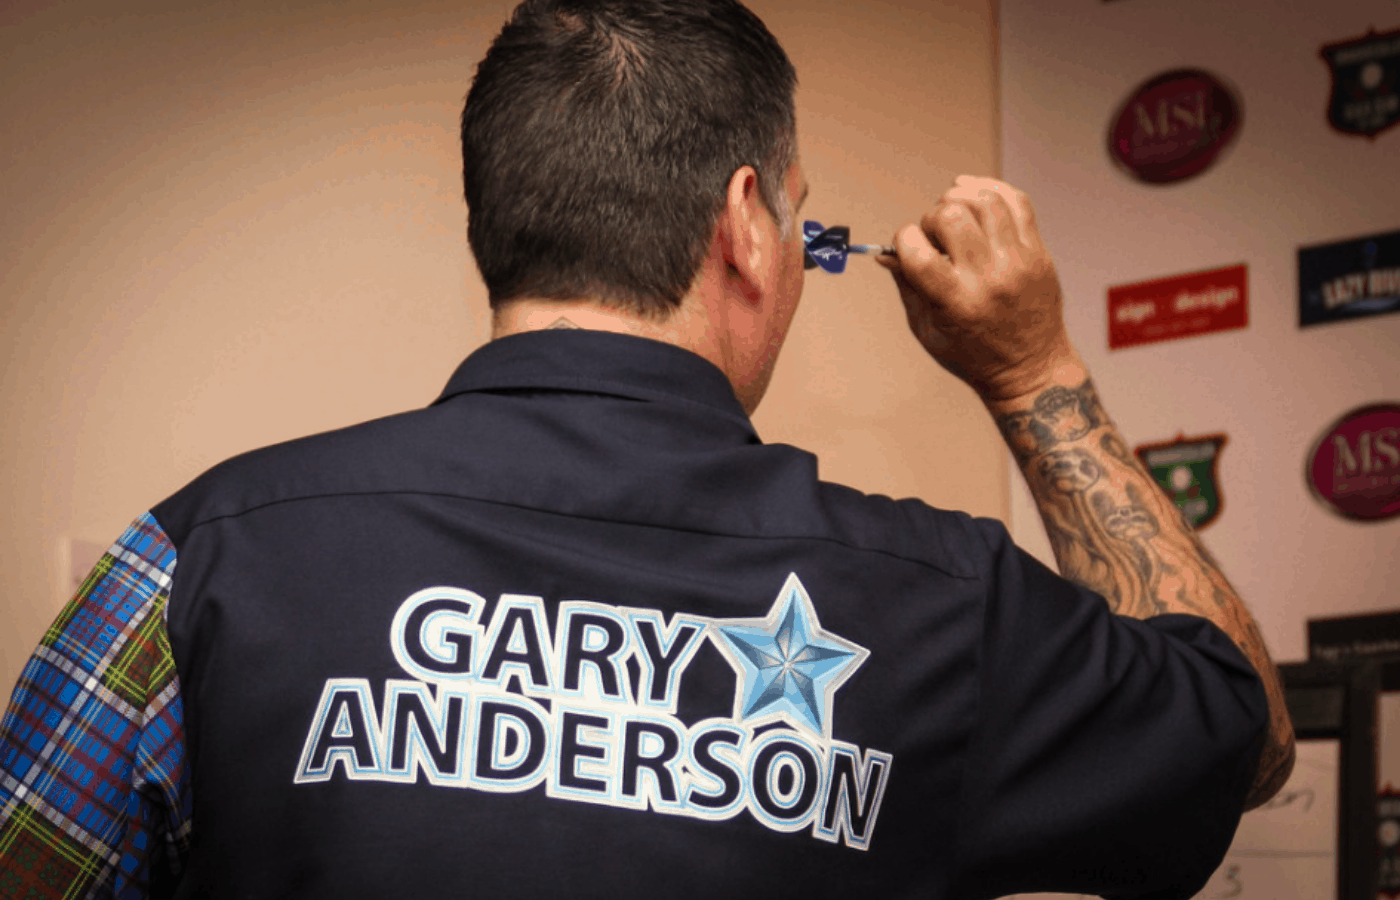 What Darts Does Gary Anderson Use